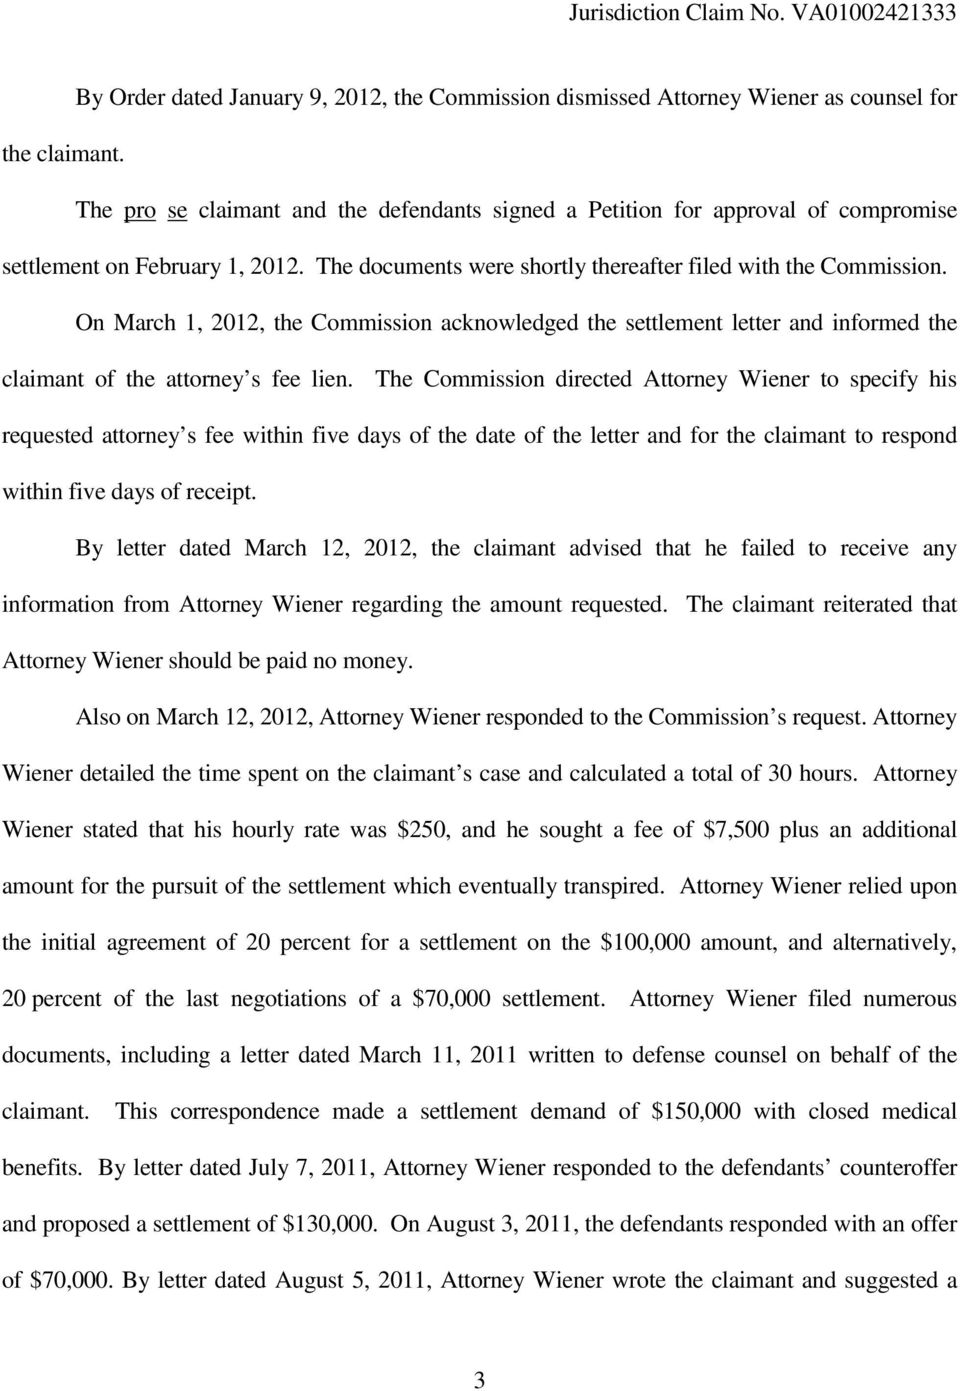 On March 1, 2012, the Commission acknowledged the settlement letter and informed the claimant of the attorney s fee lien.